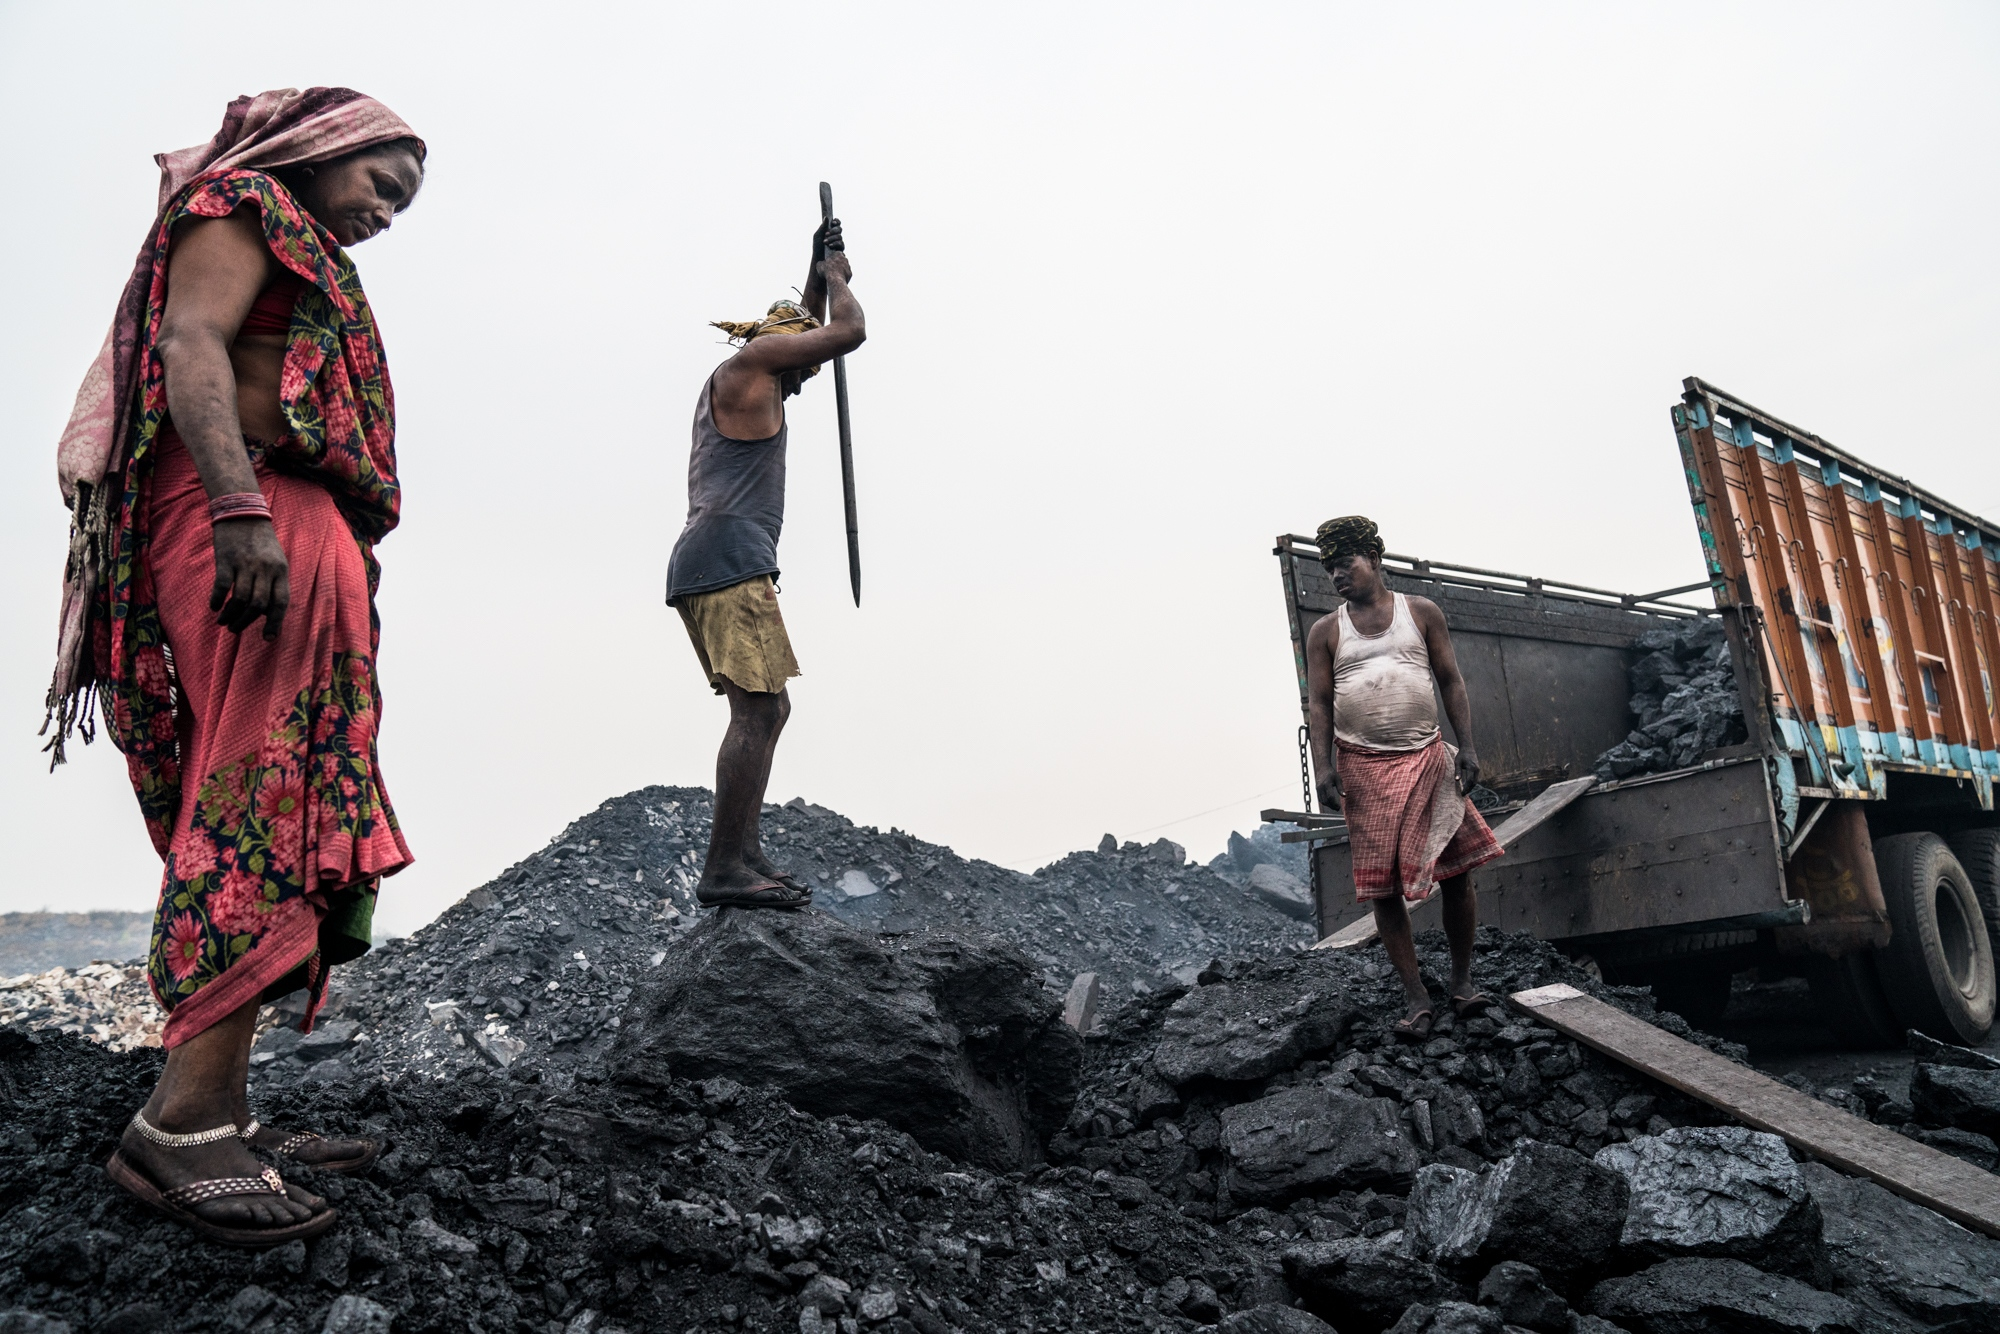 Miners break apart coal for large scale transport to use as fuel in power plants across India that spit out vast amounts of black carbon and other particulates for electricity production.